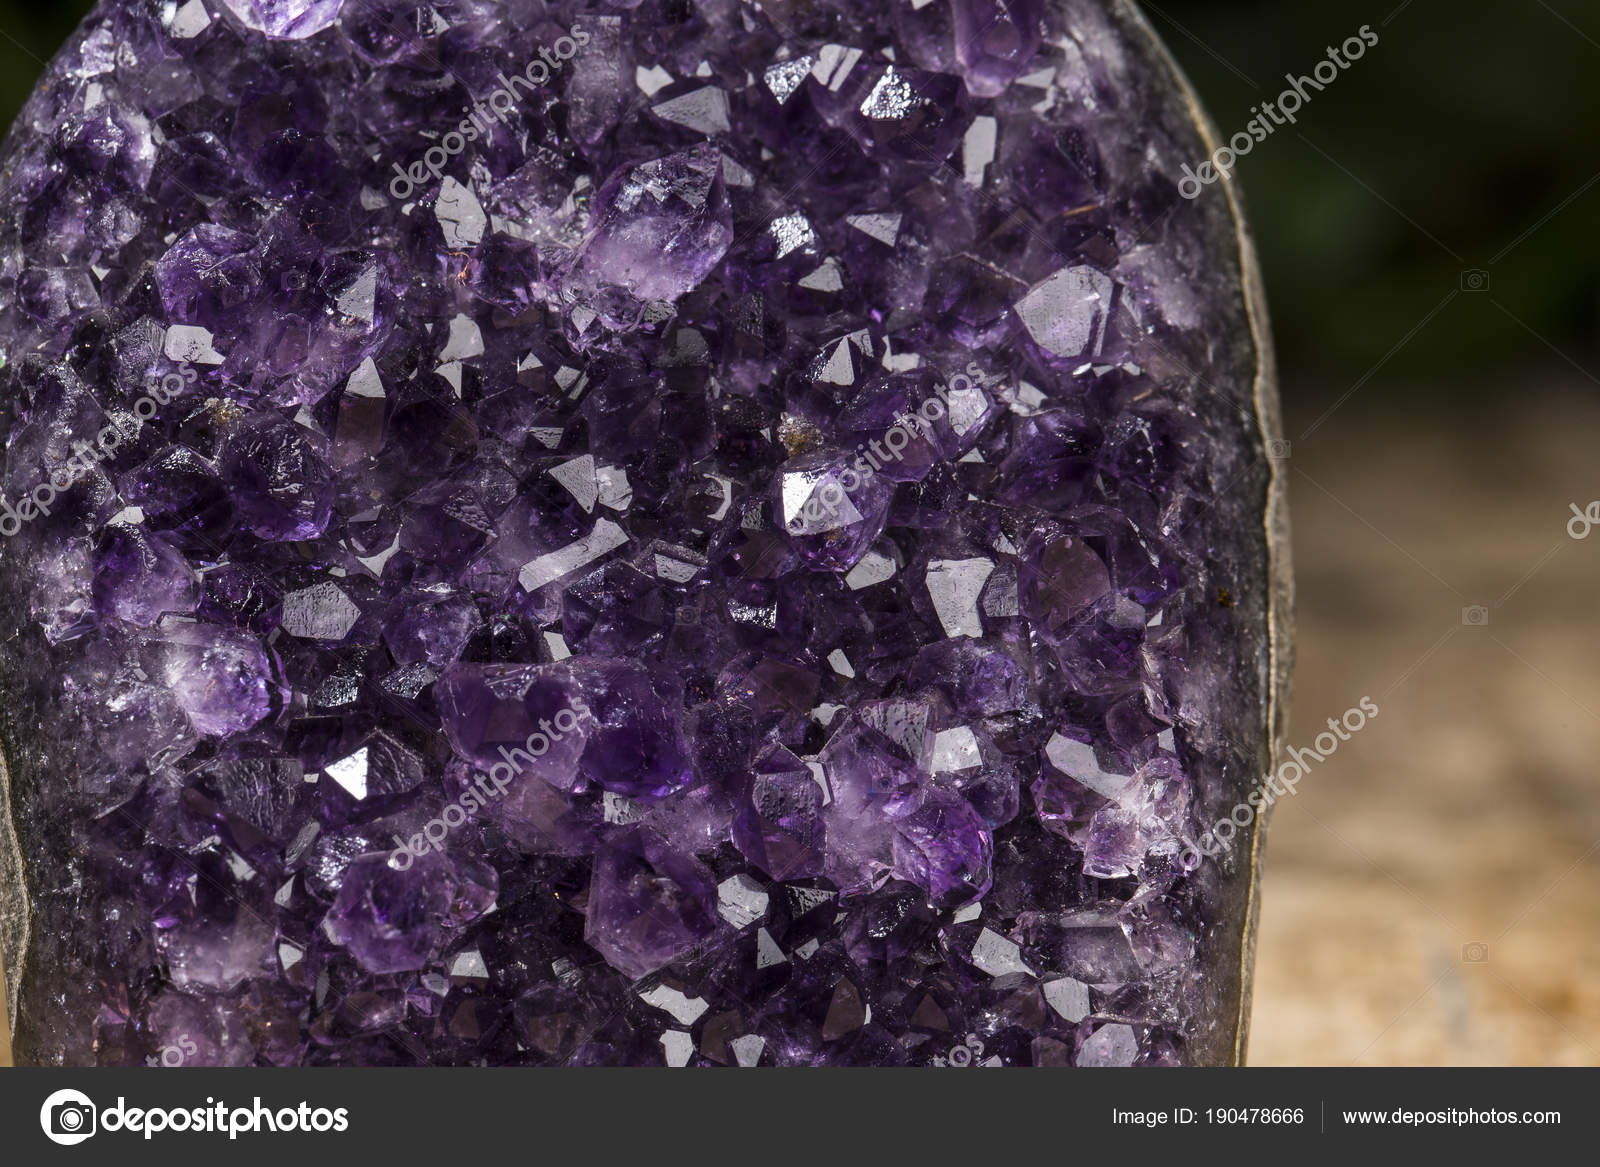 Amethyst geode on black background  Beautiful natural crystals